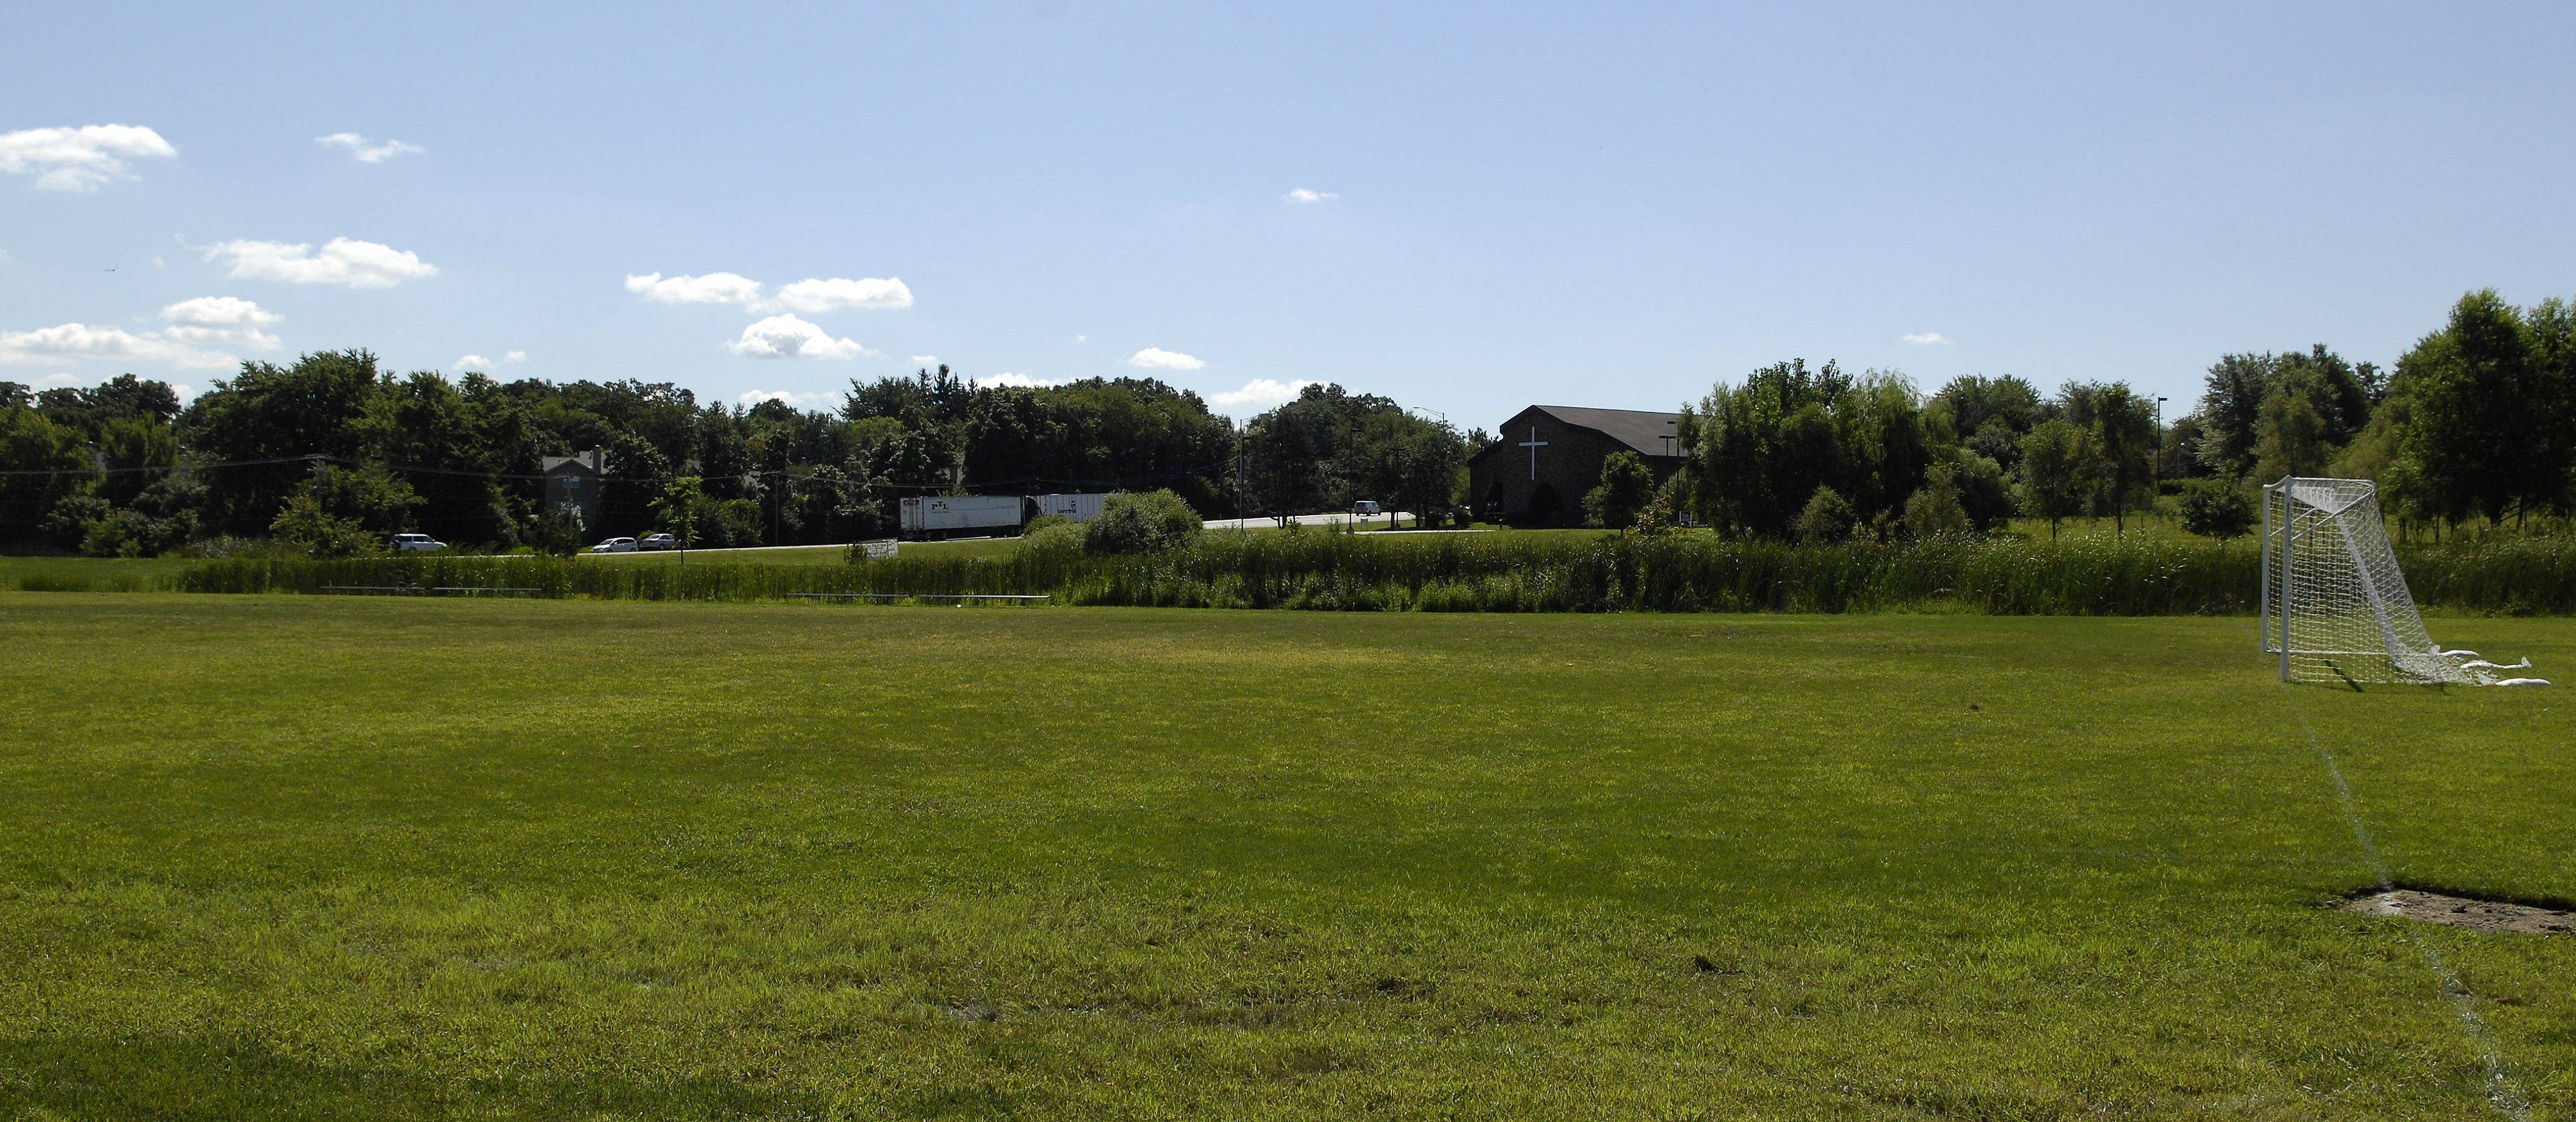 The soccer field at Harvest Christian Academy in Elgin just off Randall Road across from the Home Depot.